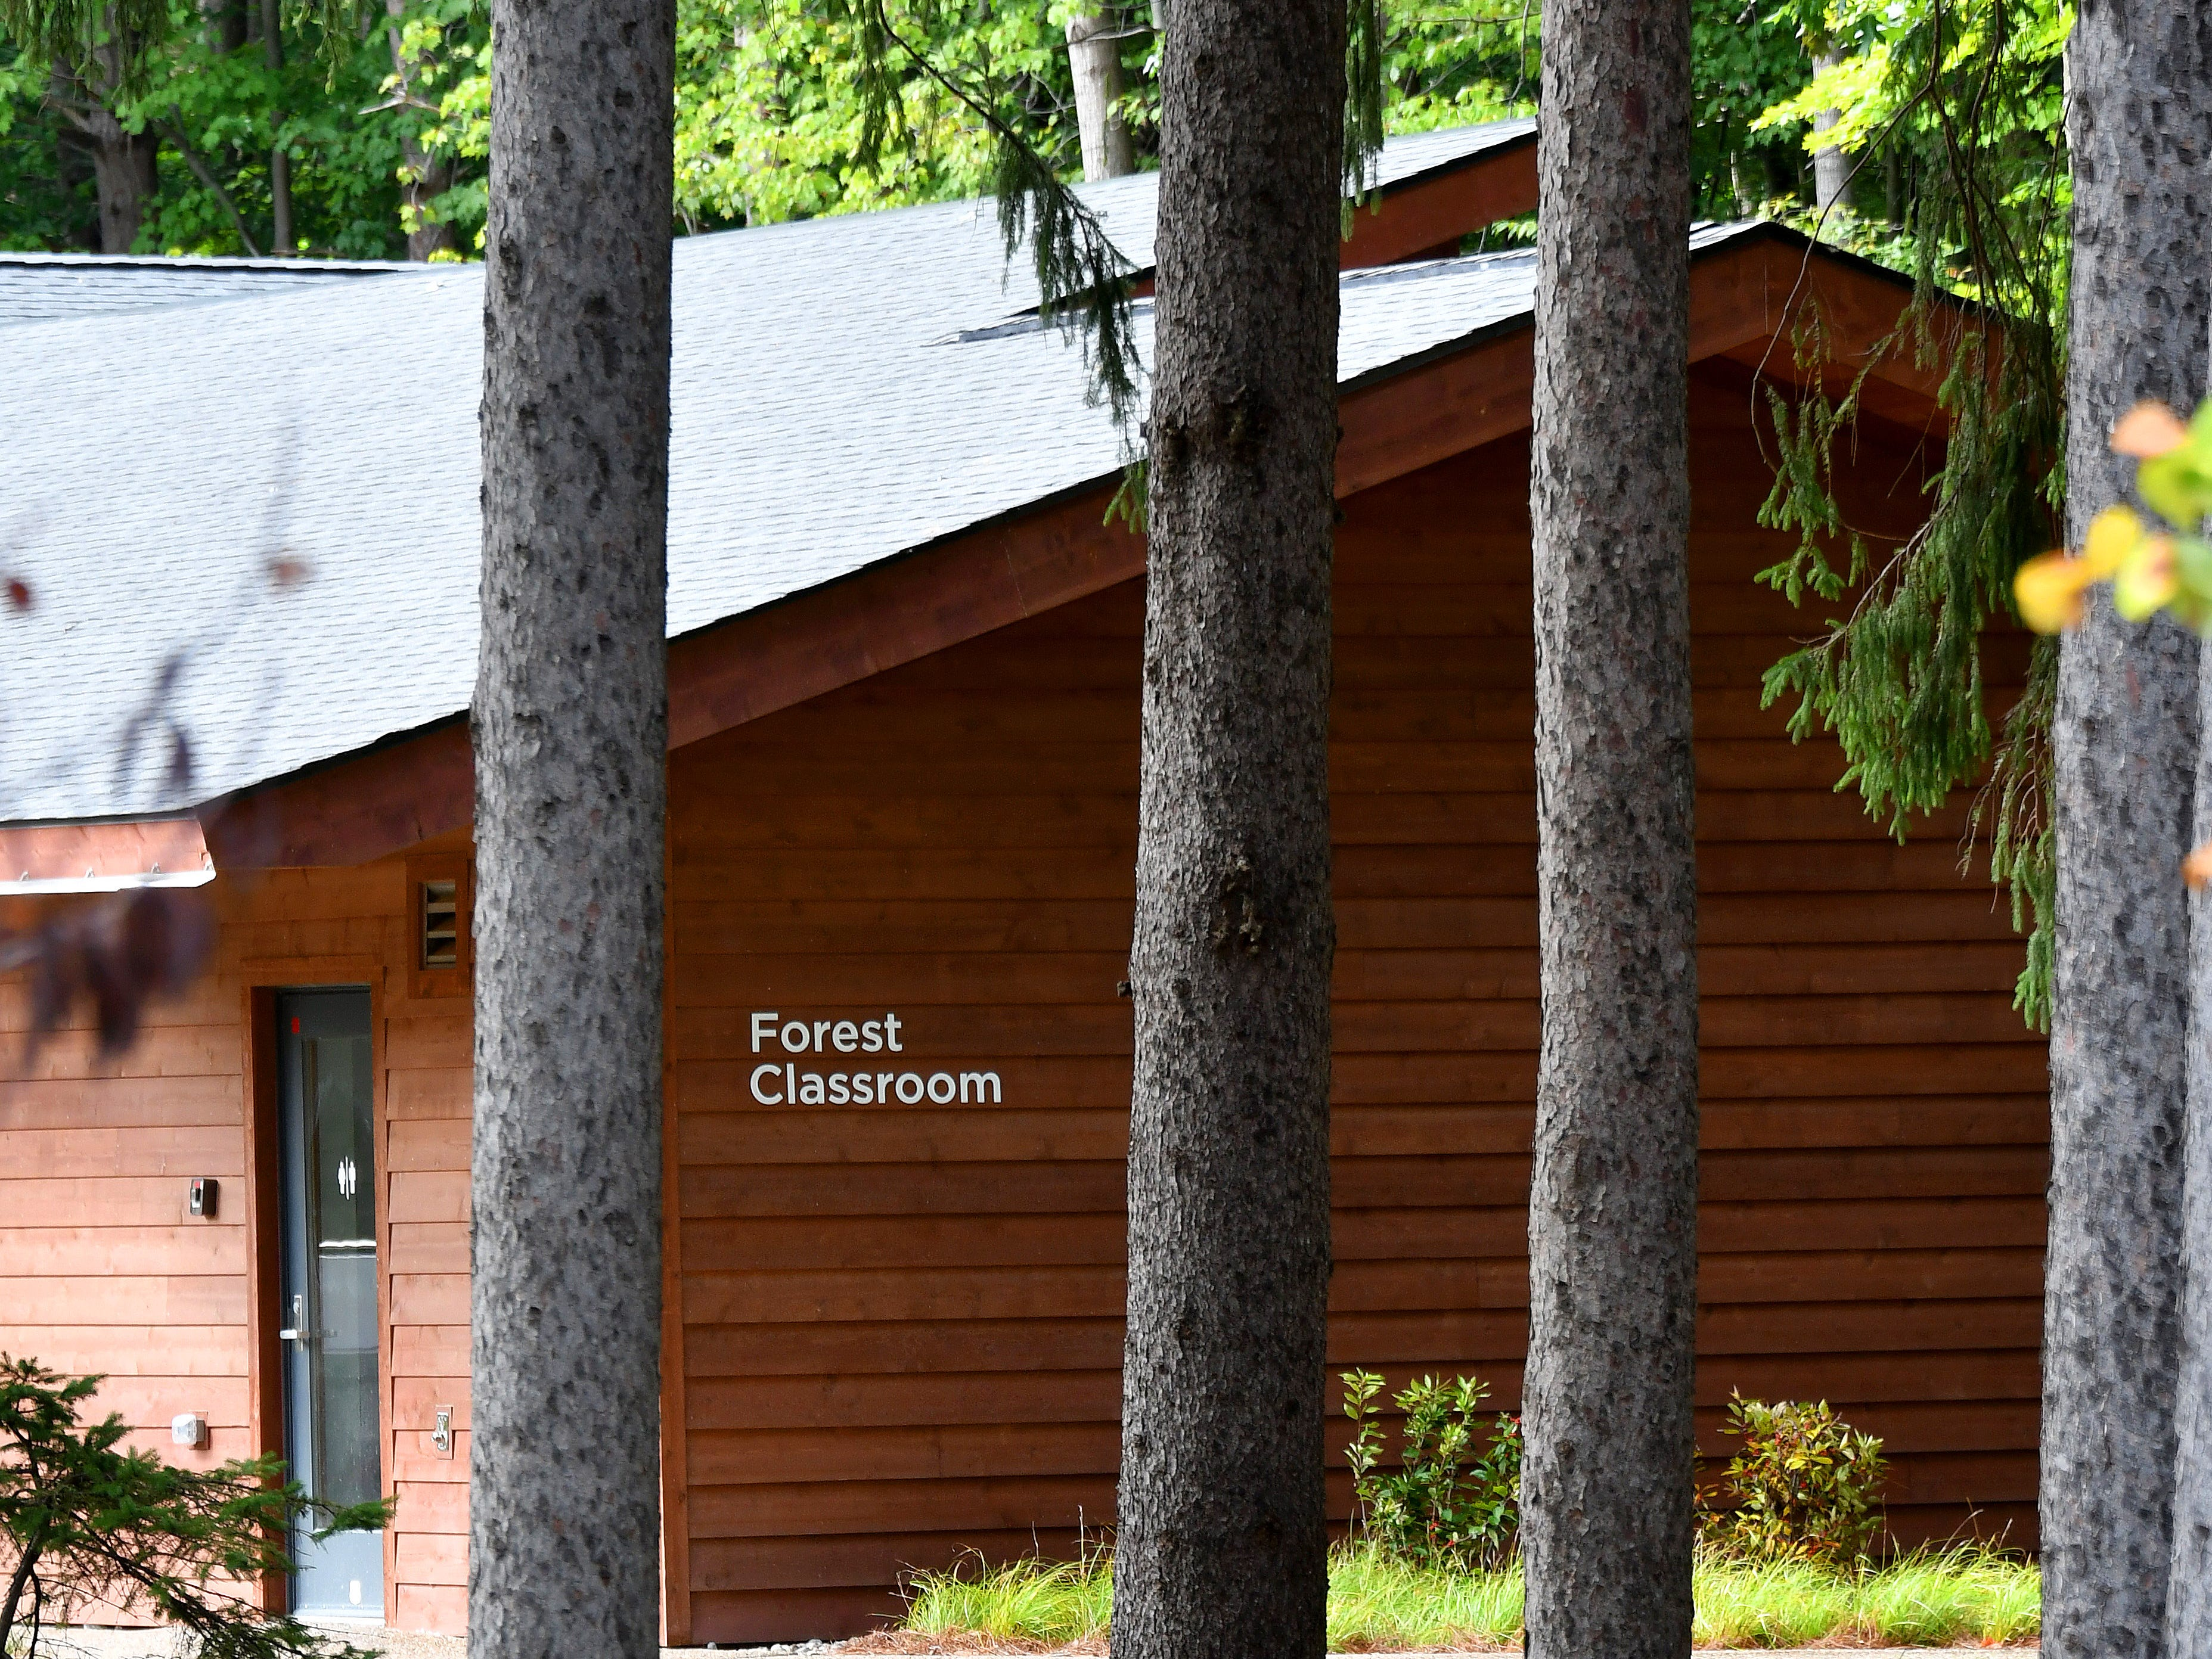 The Whiting Forest experience includes a classroom building, snack bar and meeting areas.